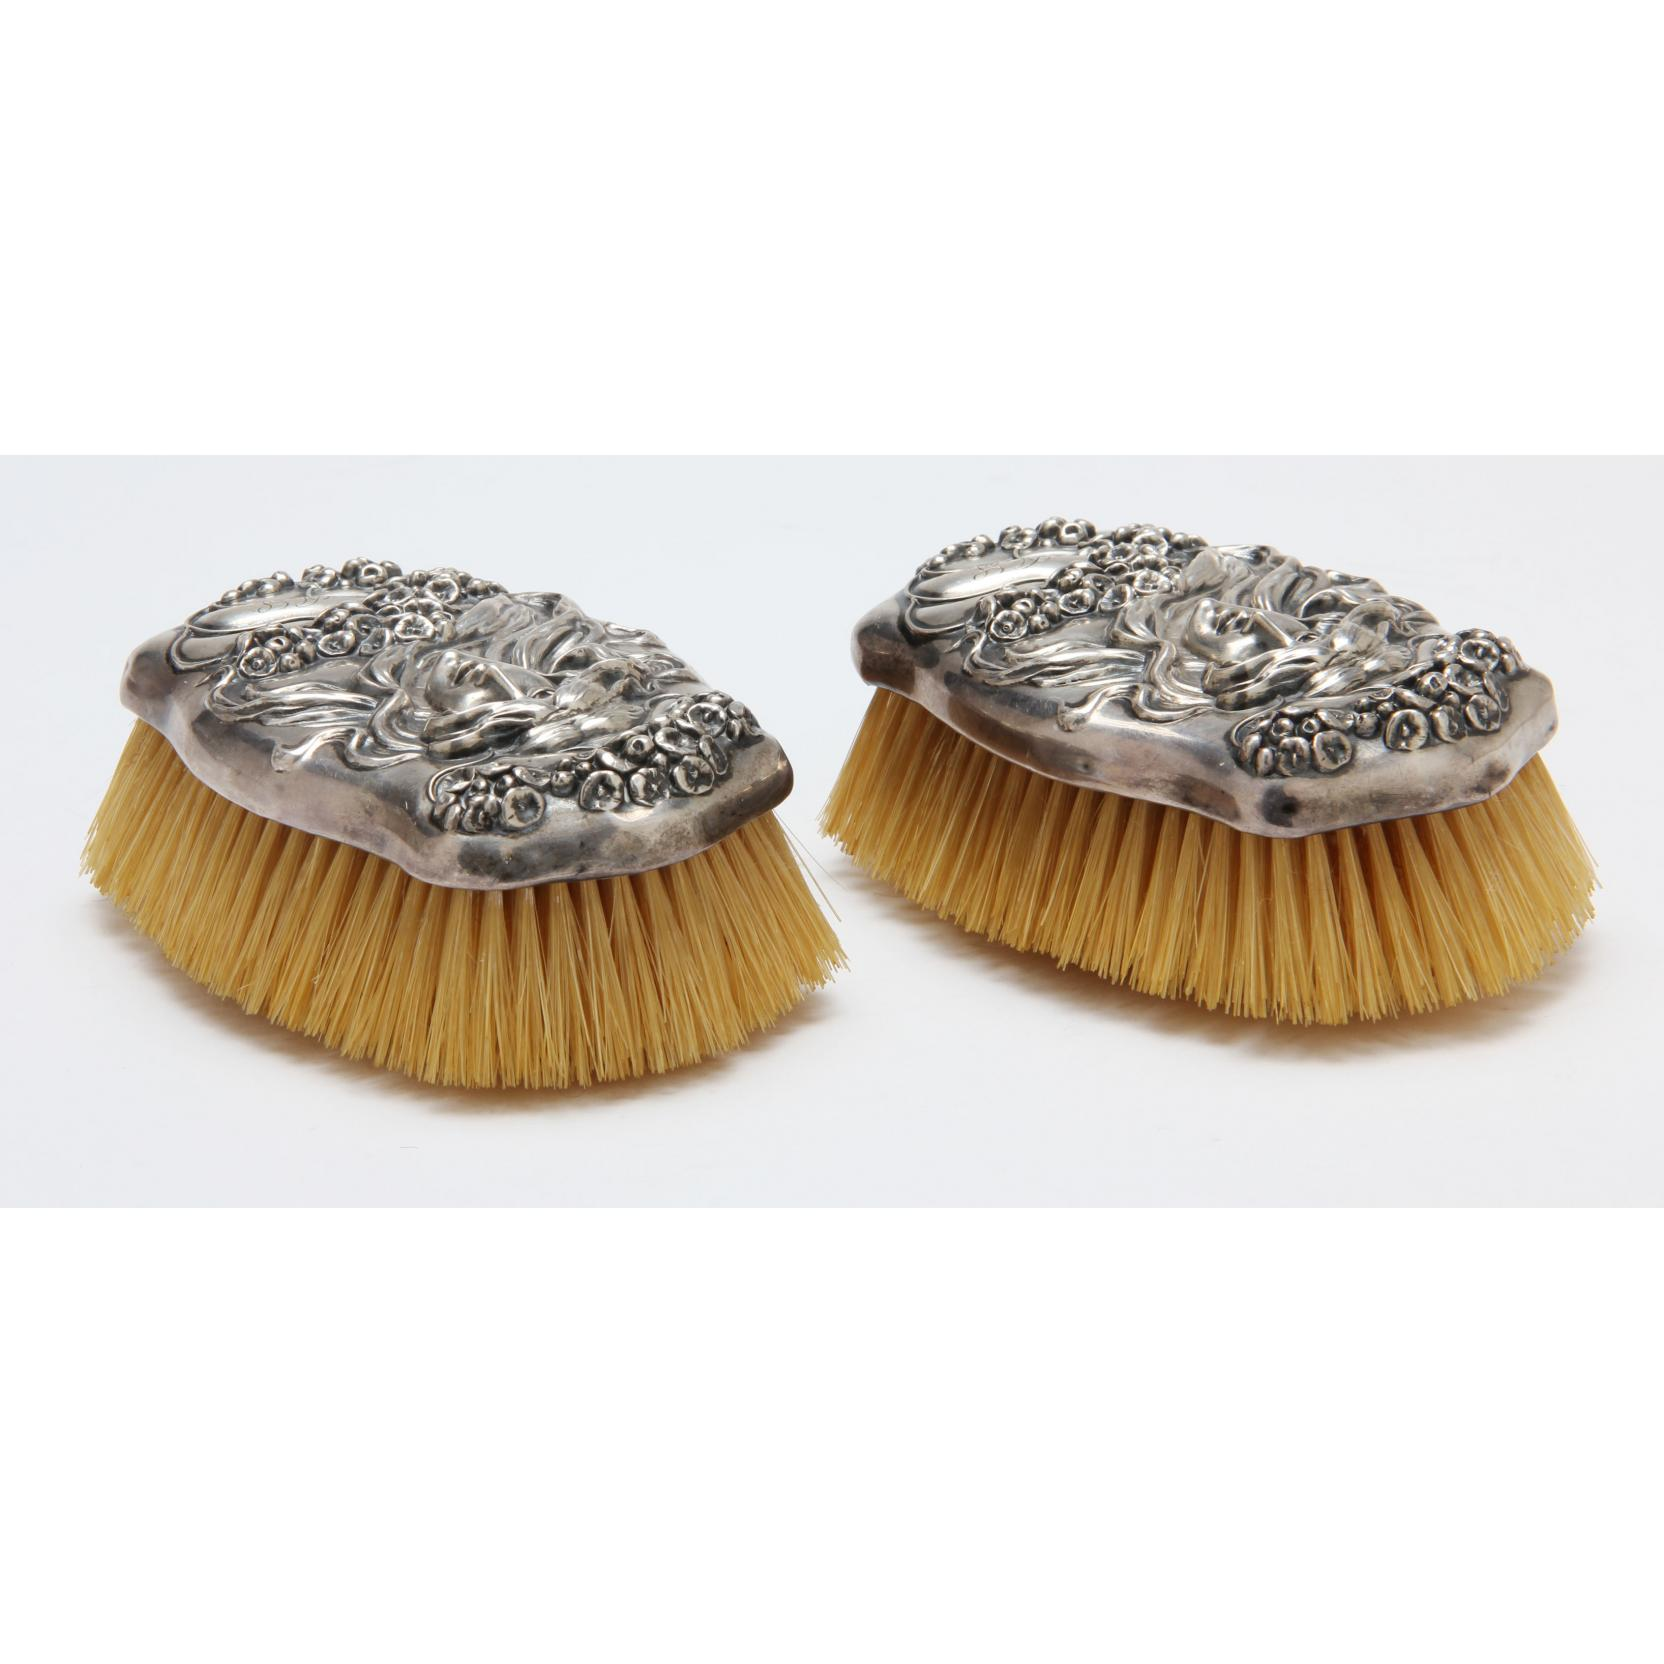 pair-of-american-art-nouveau-sterling-silver-clothes-brushes